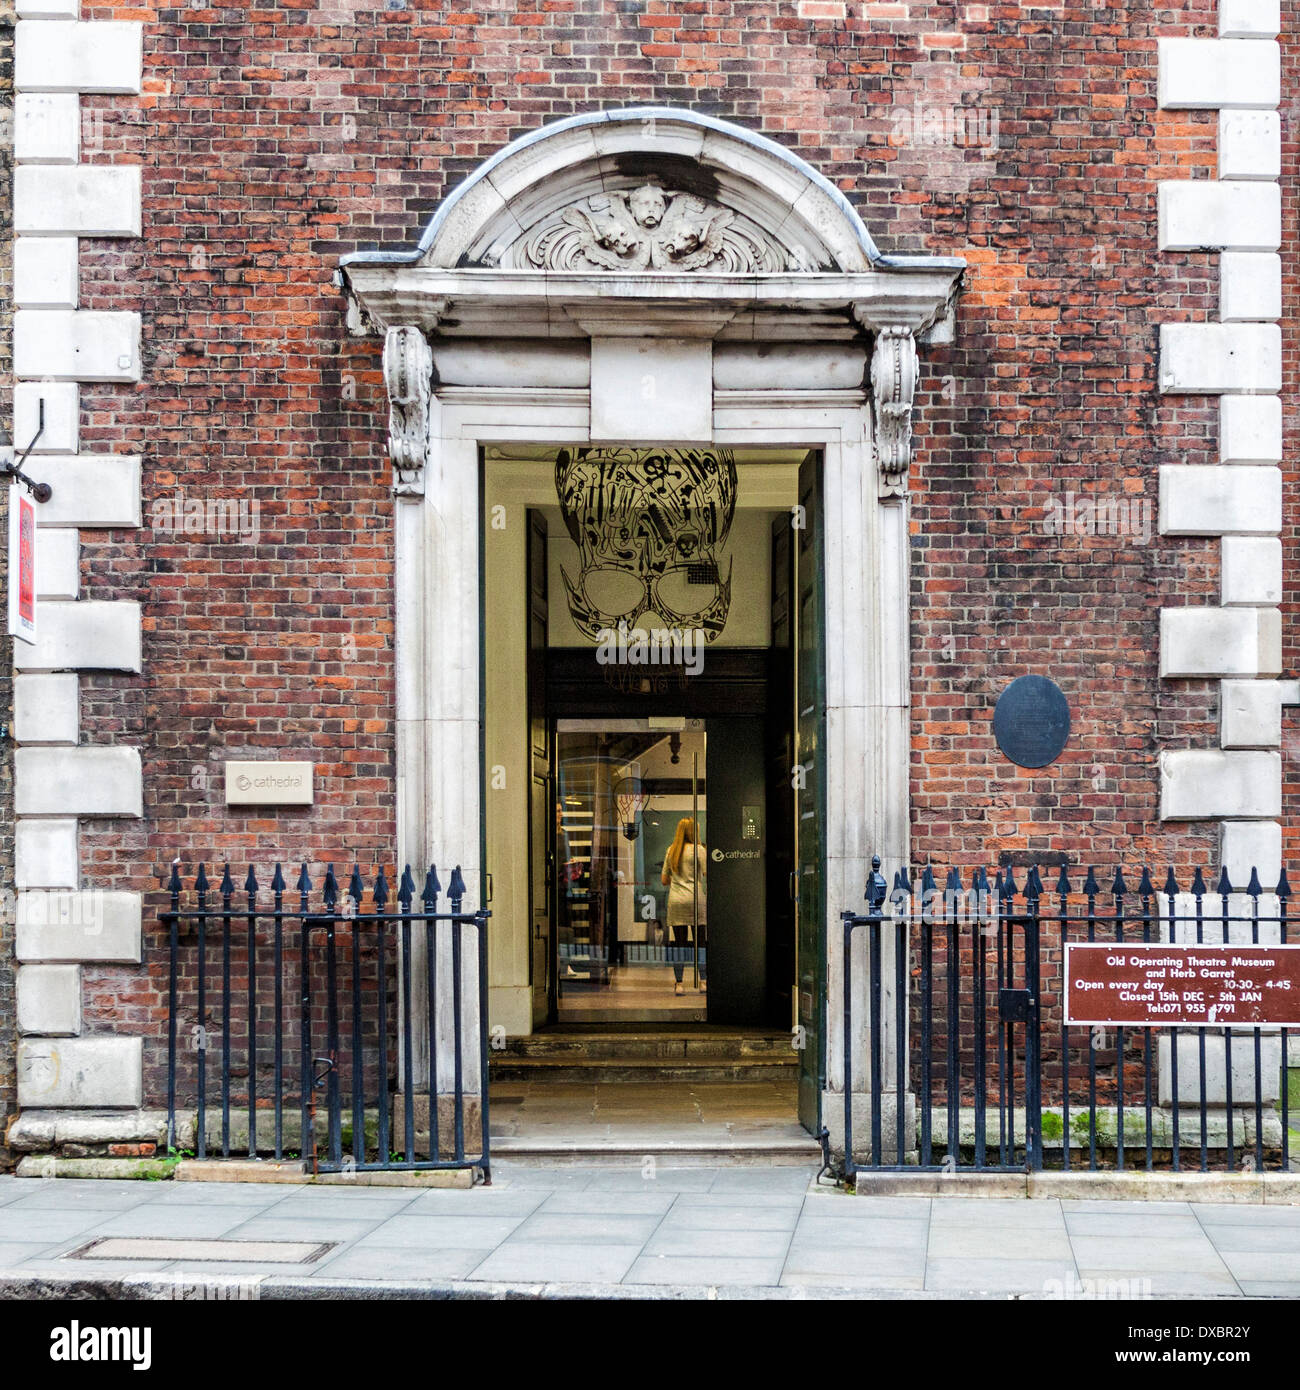 Entance to Old Operating Theatre museum and Herb Garret located in Old St Thomas's church - St Thomas Street, London, UK - Stock Image